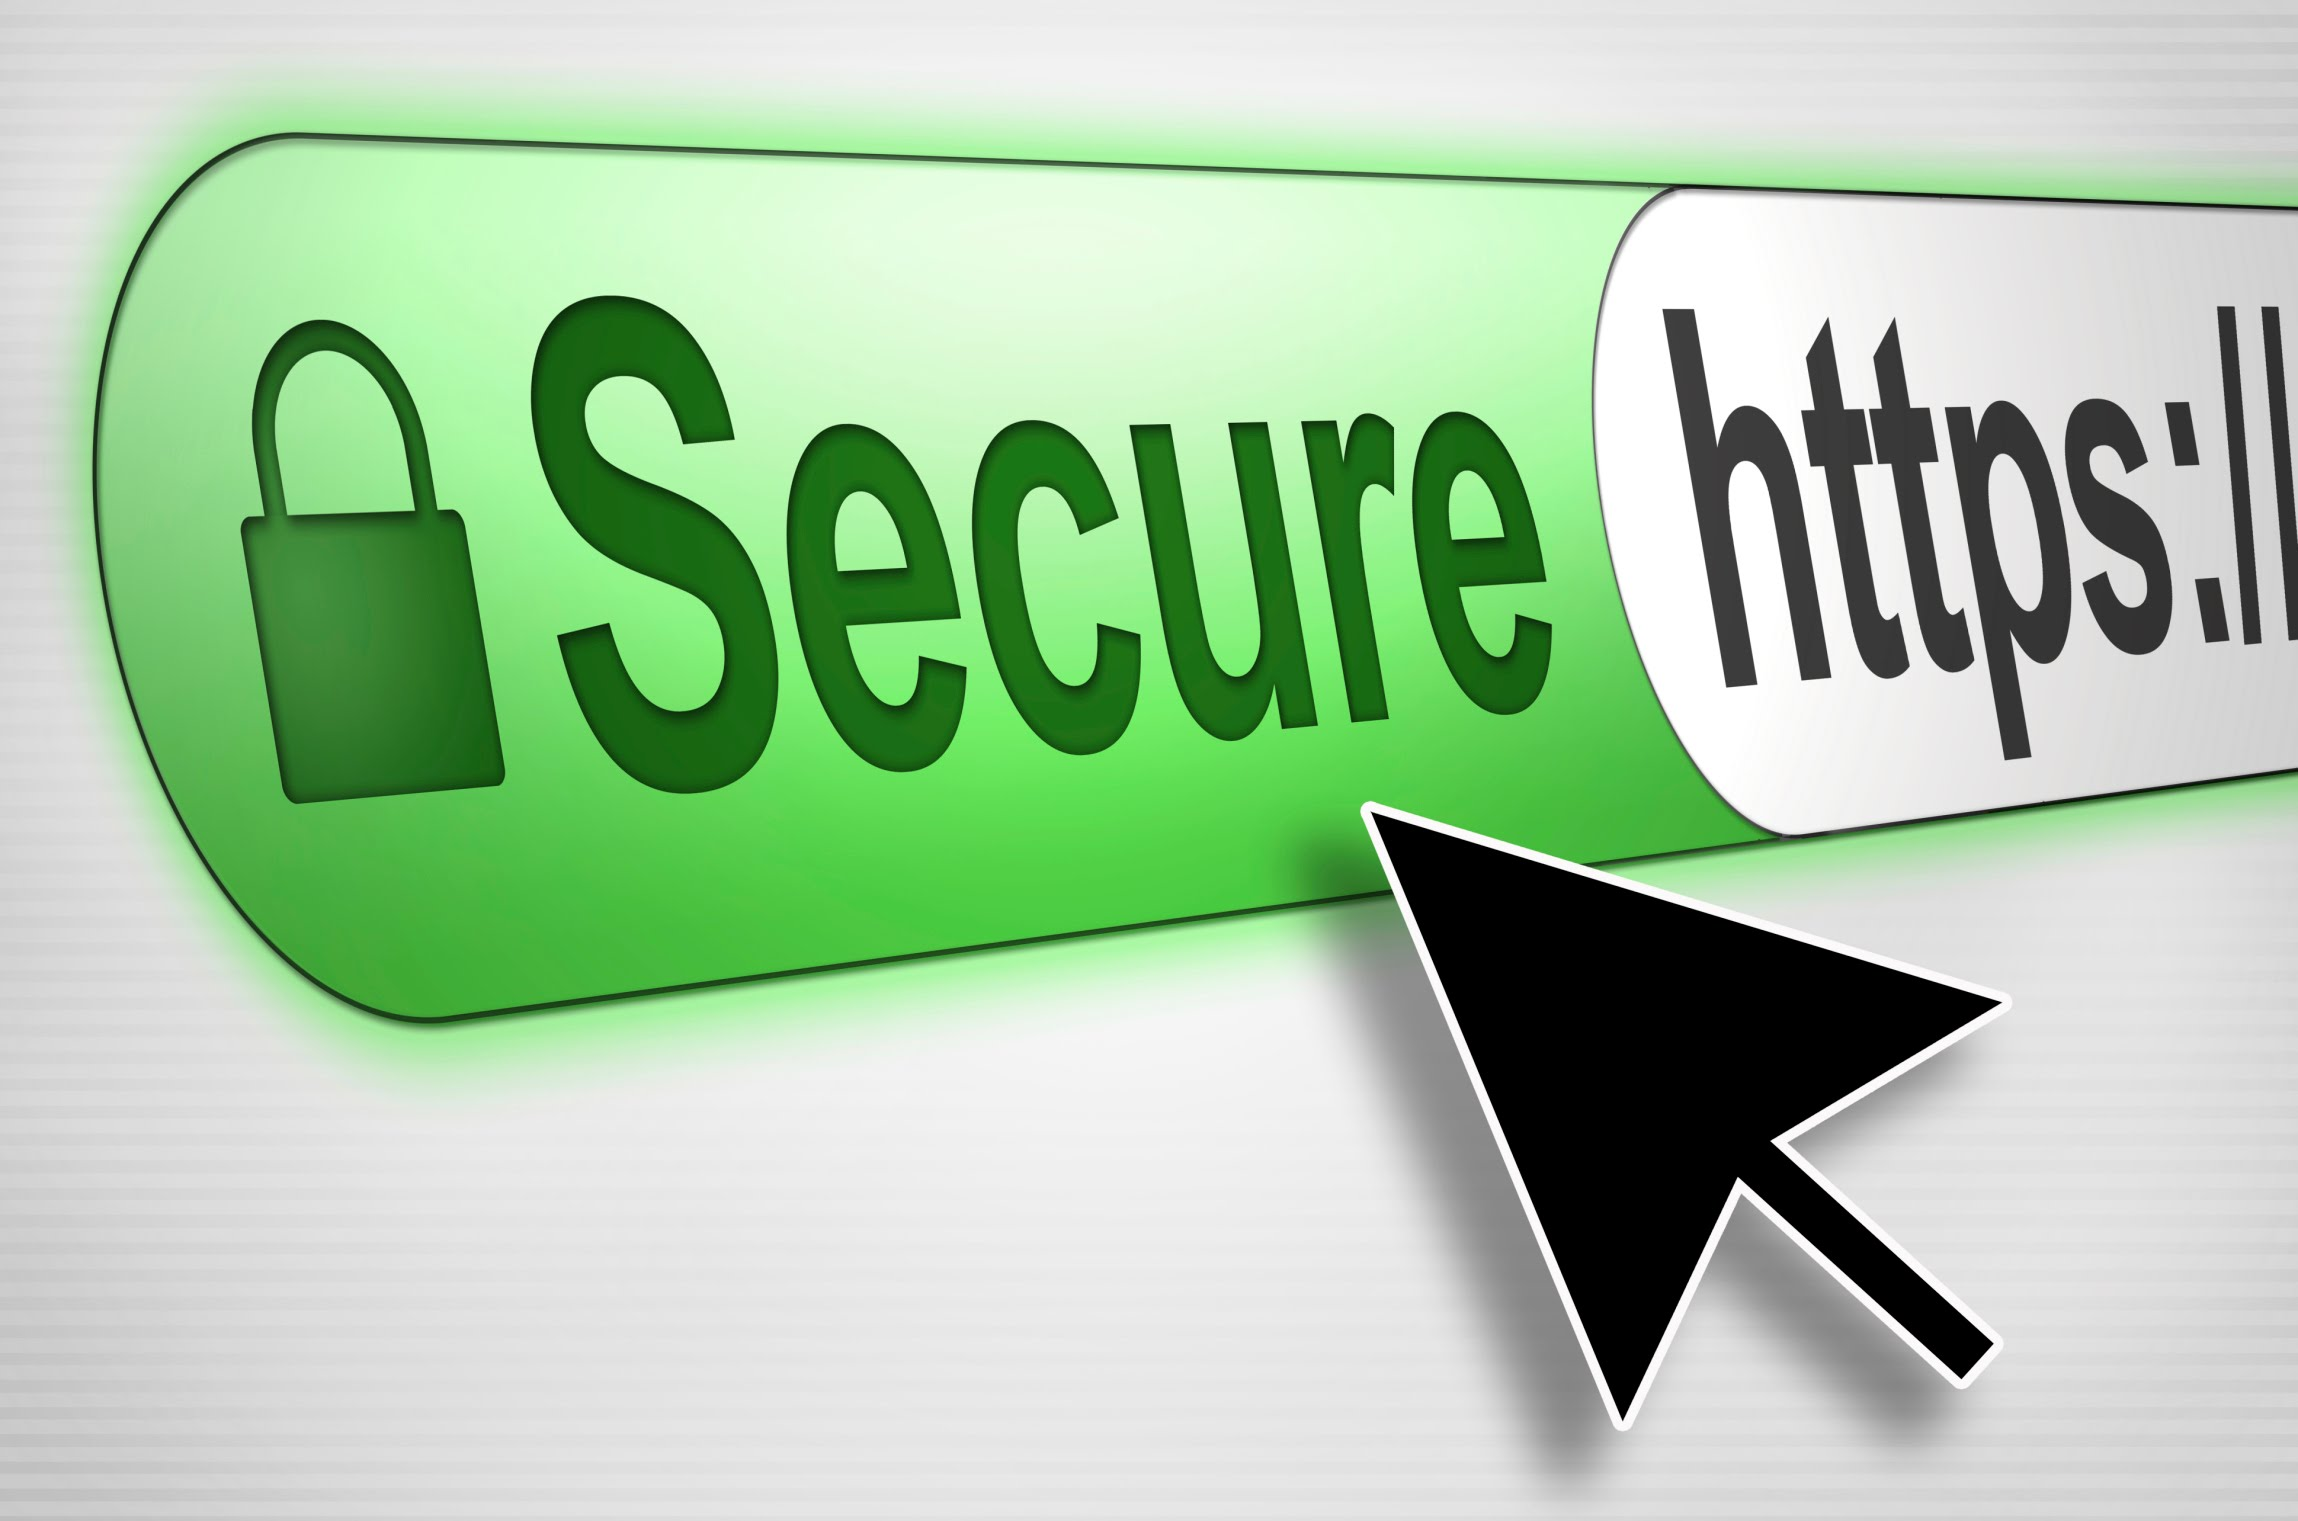 provide and install SSL Certificate for Website free forever